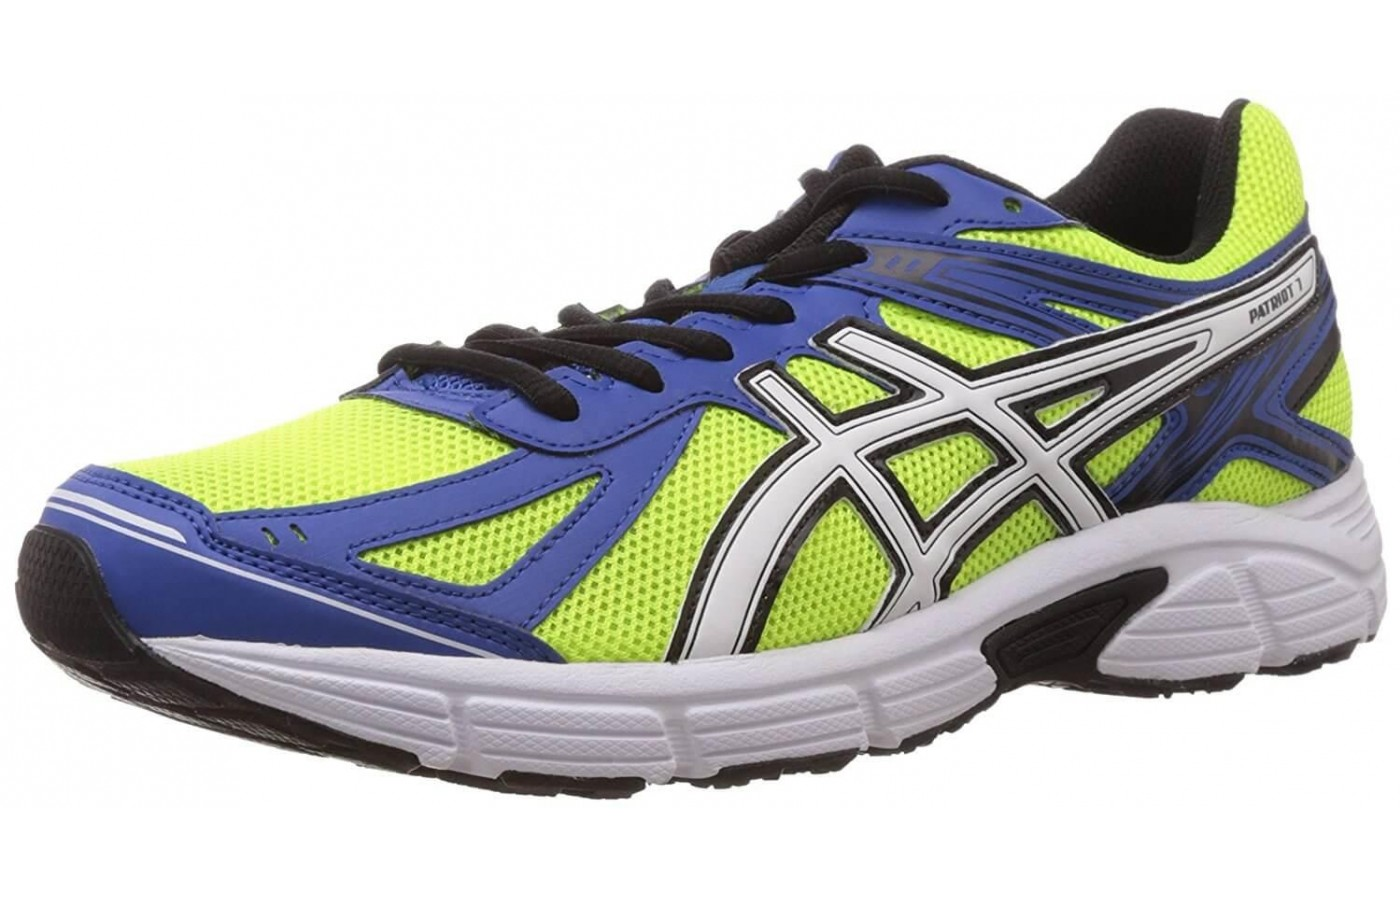 This is a stability shoe for runners who suffer with pronation issues.